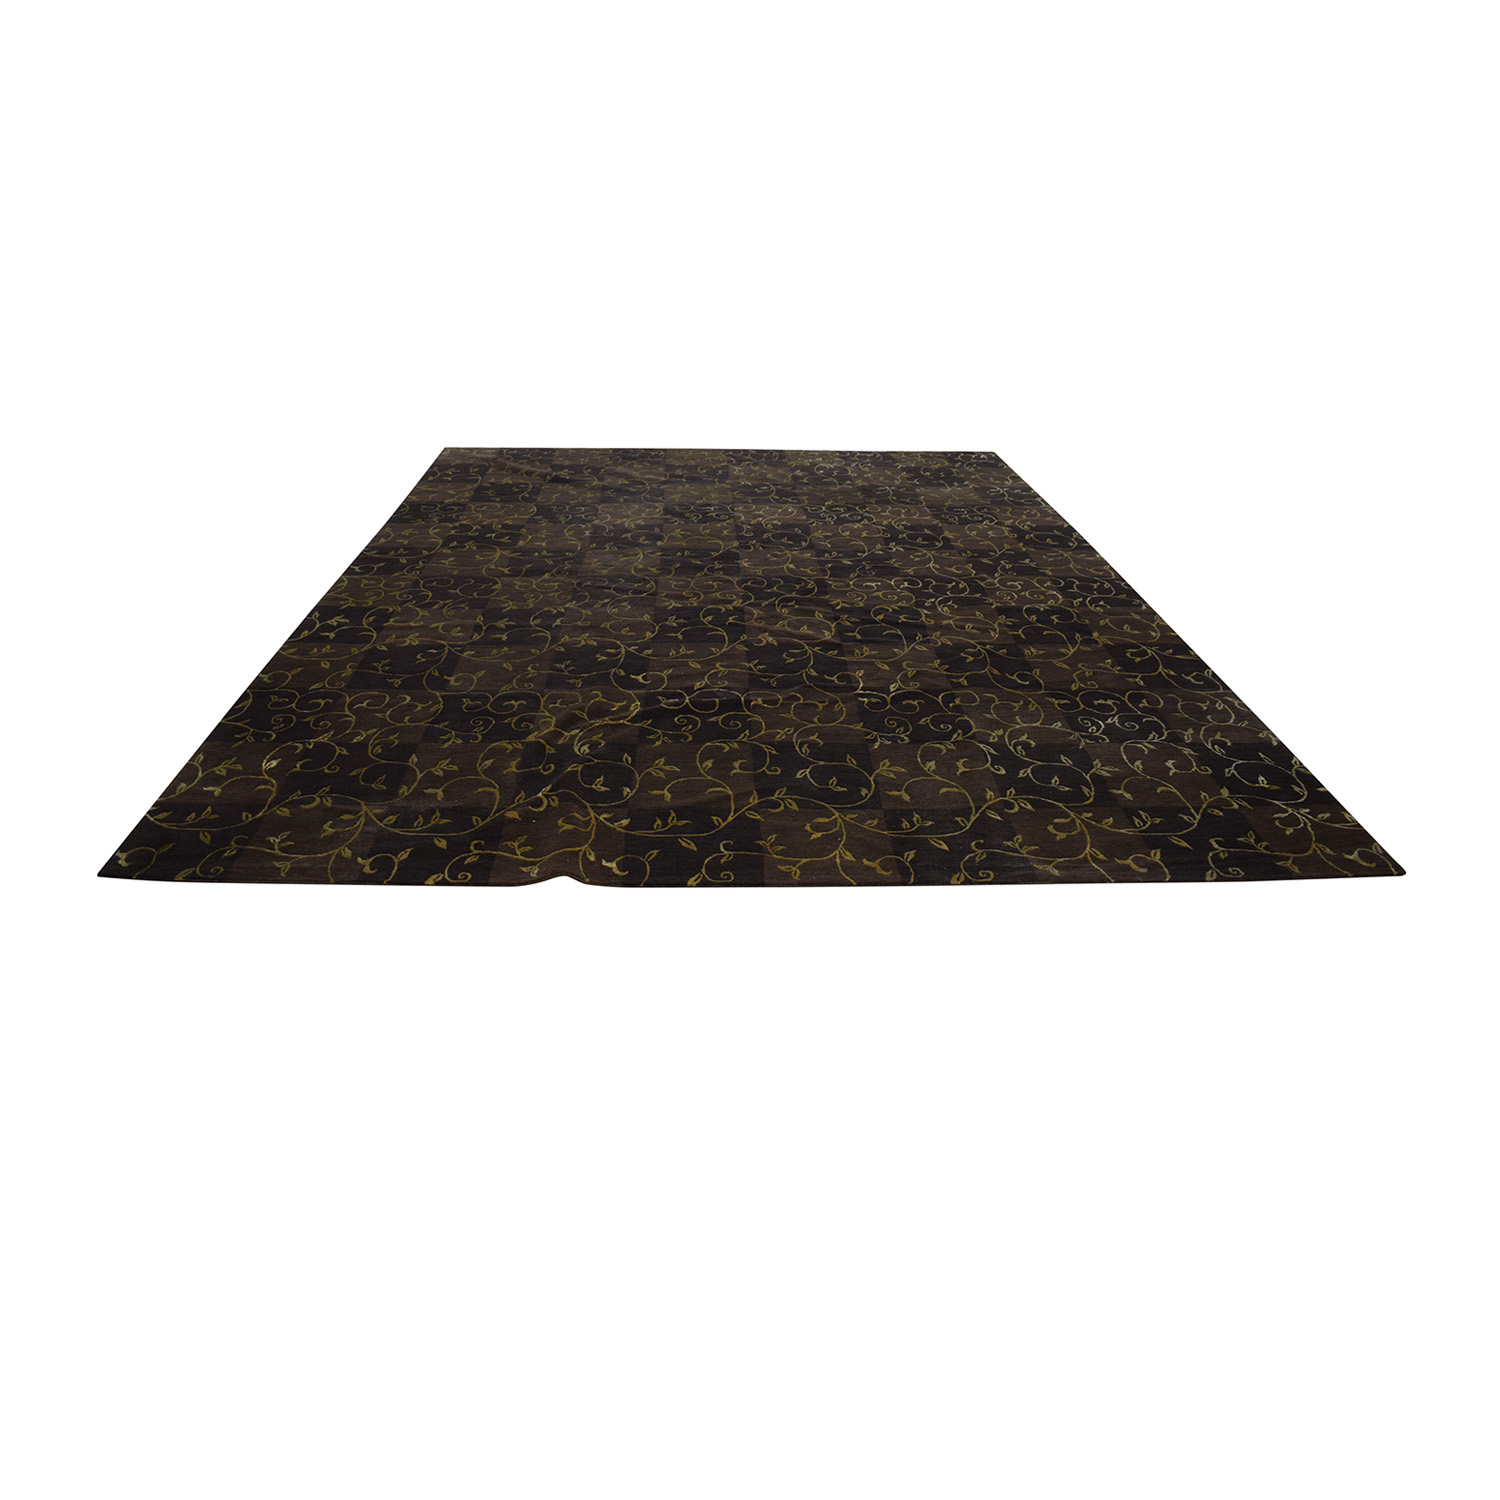 ABC Carpet & Home ABC Carpet & Home Brown and Gold Scroll Design Rug price